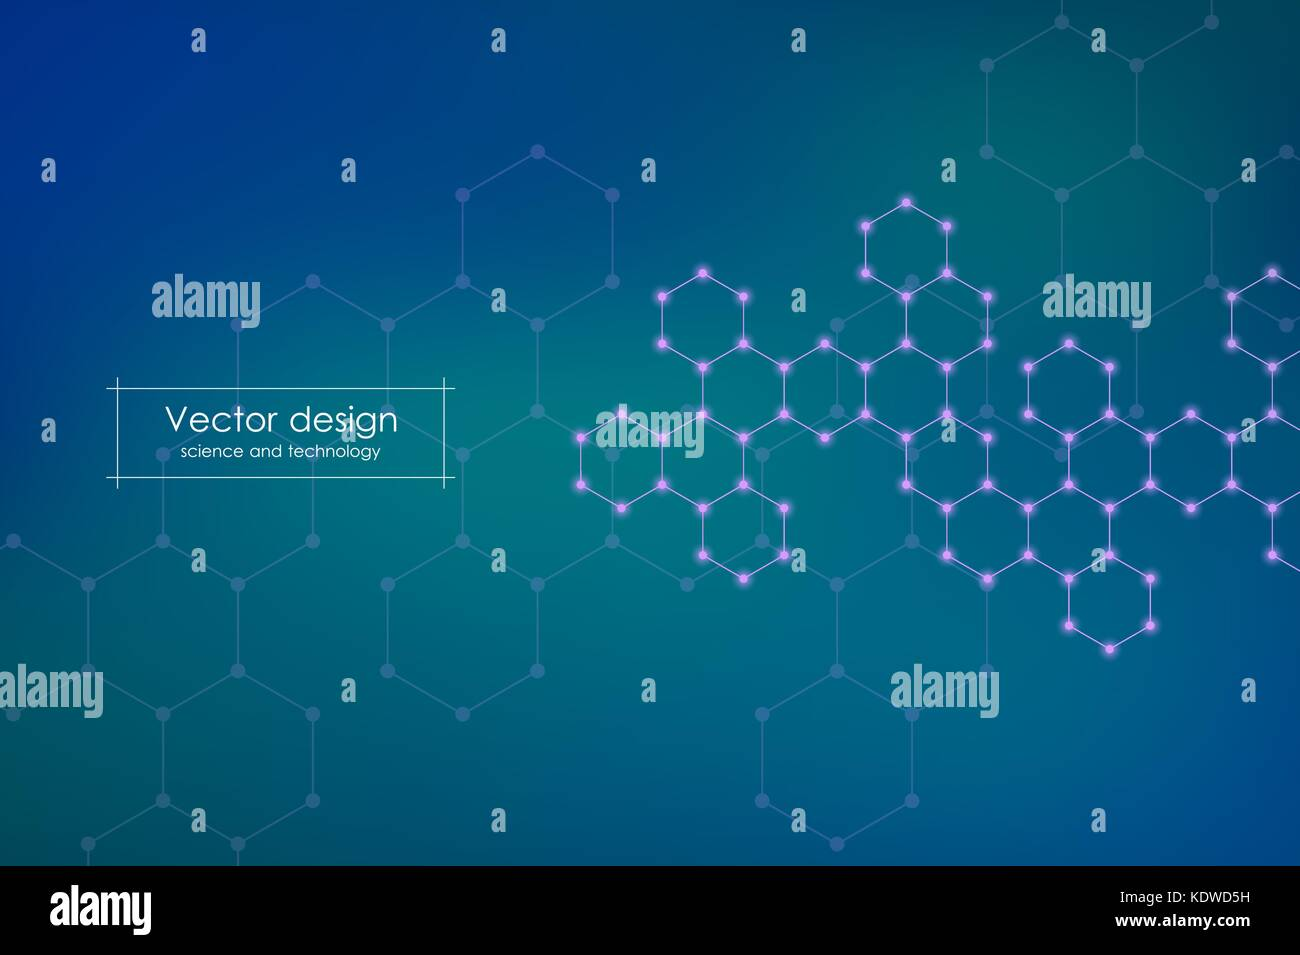 Abstract hexagonal molecule background, genetic and chemical compounds, scientific or technological concept vector - Stock Image